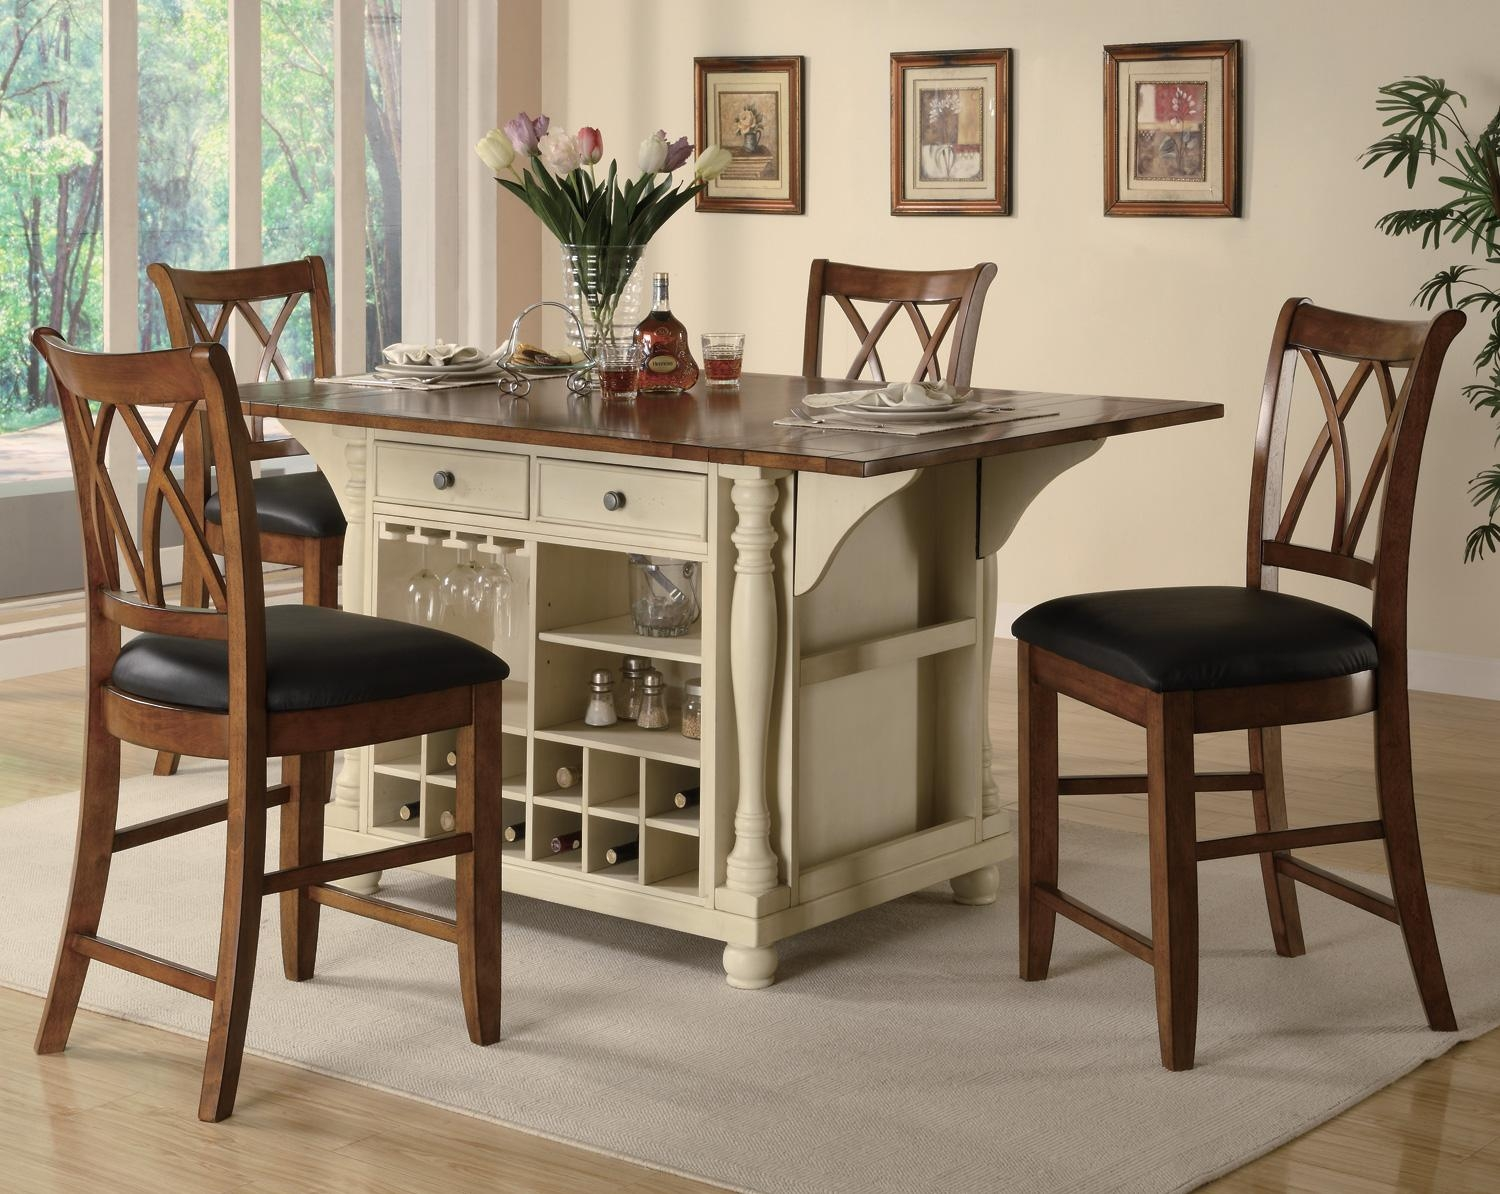 Countertop Height Kitchen Sets